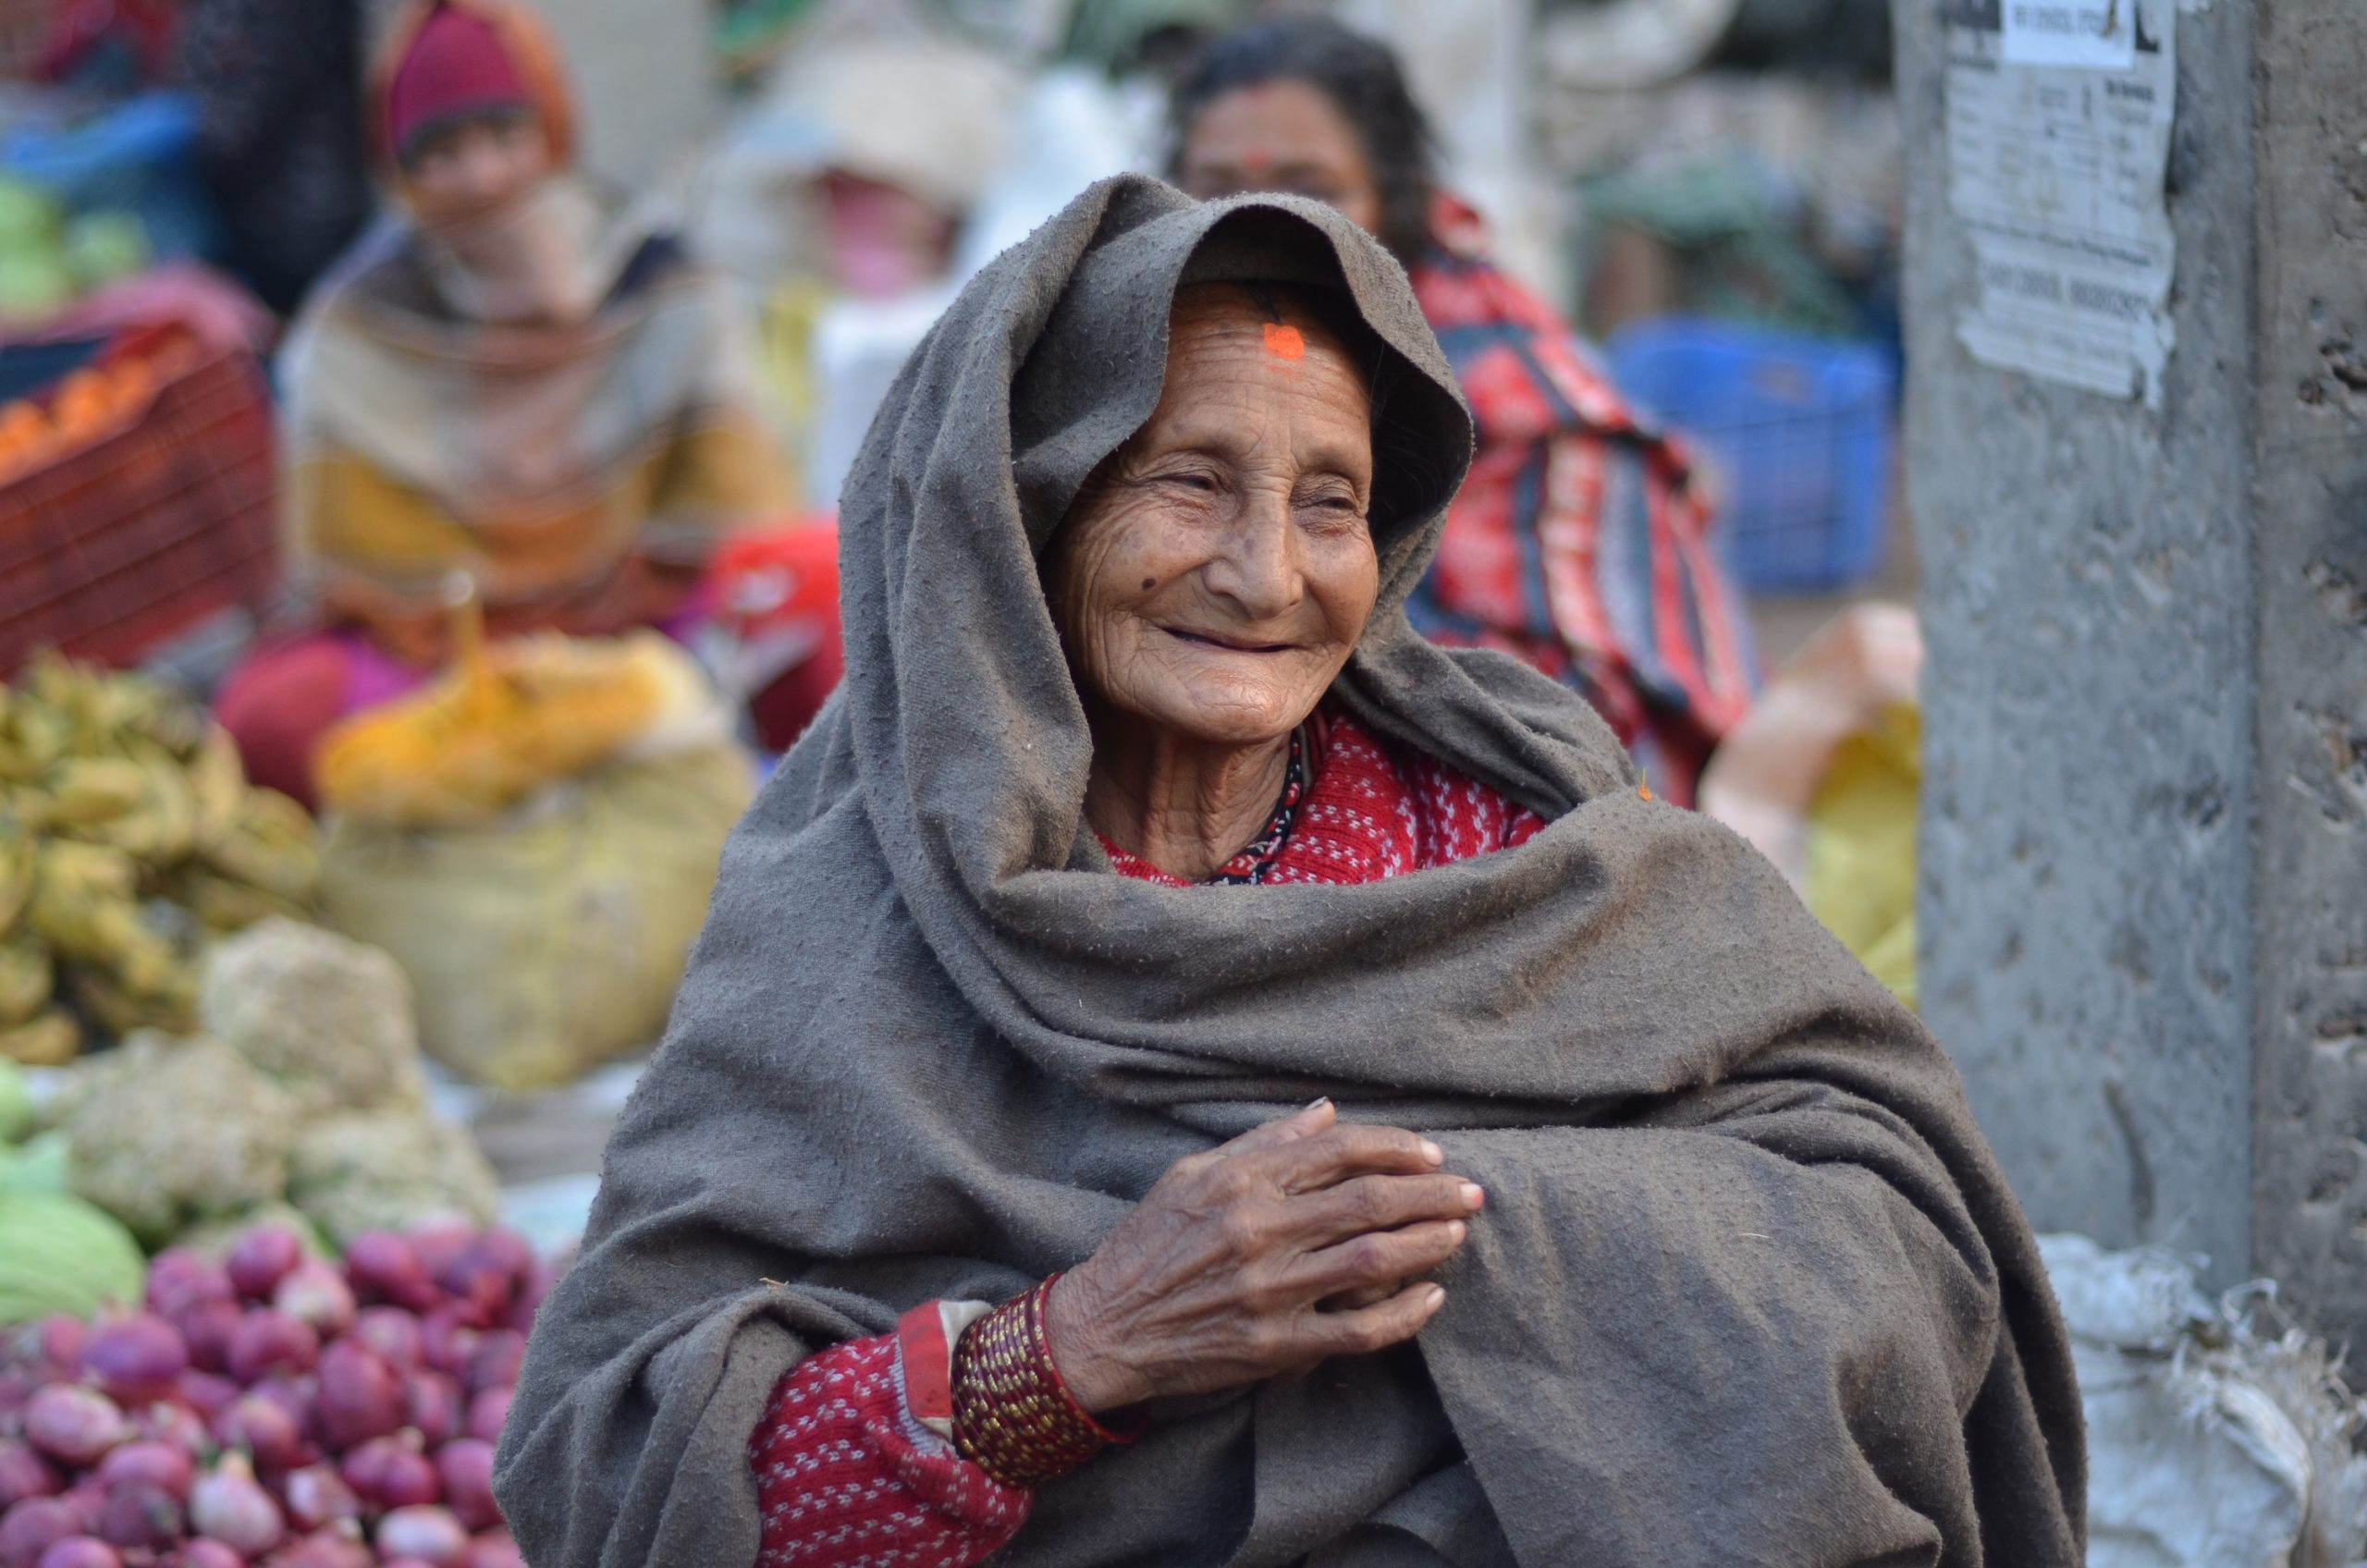 Smiling South Asian woman with shawl over head